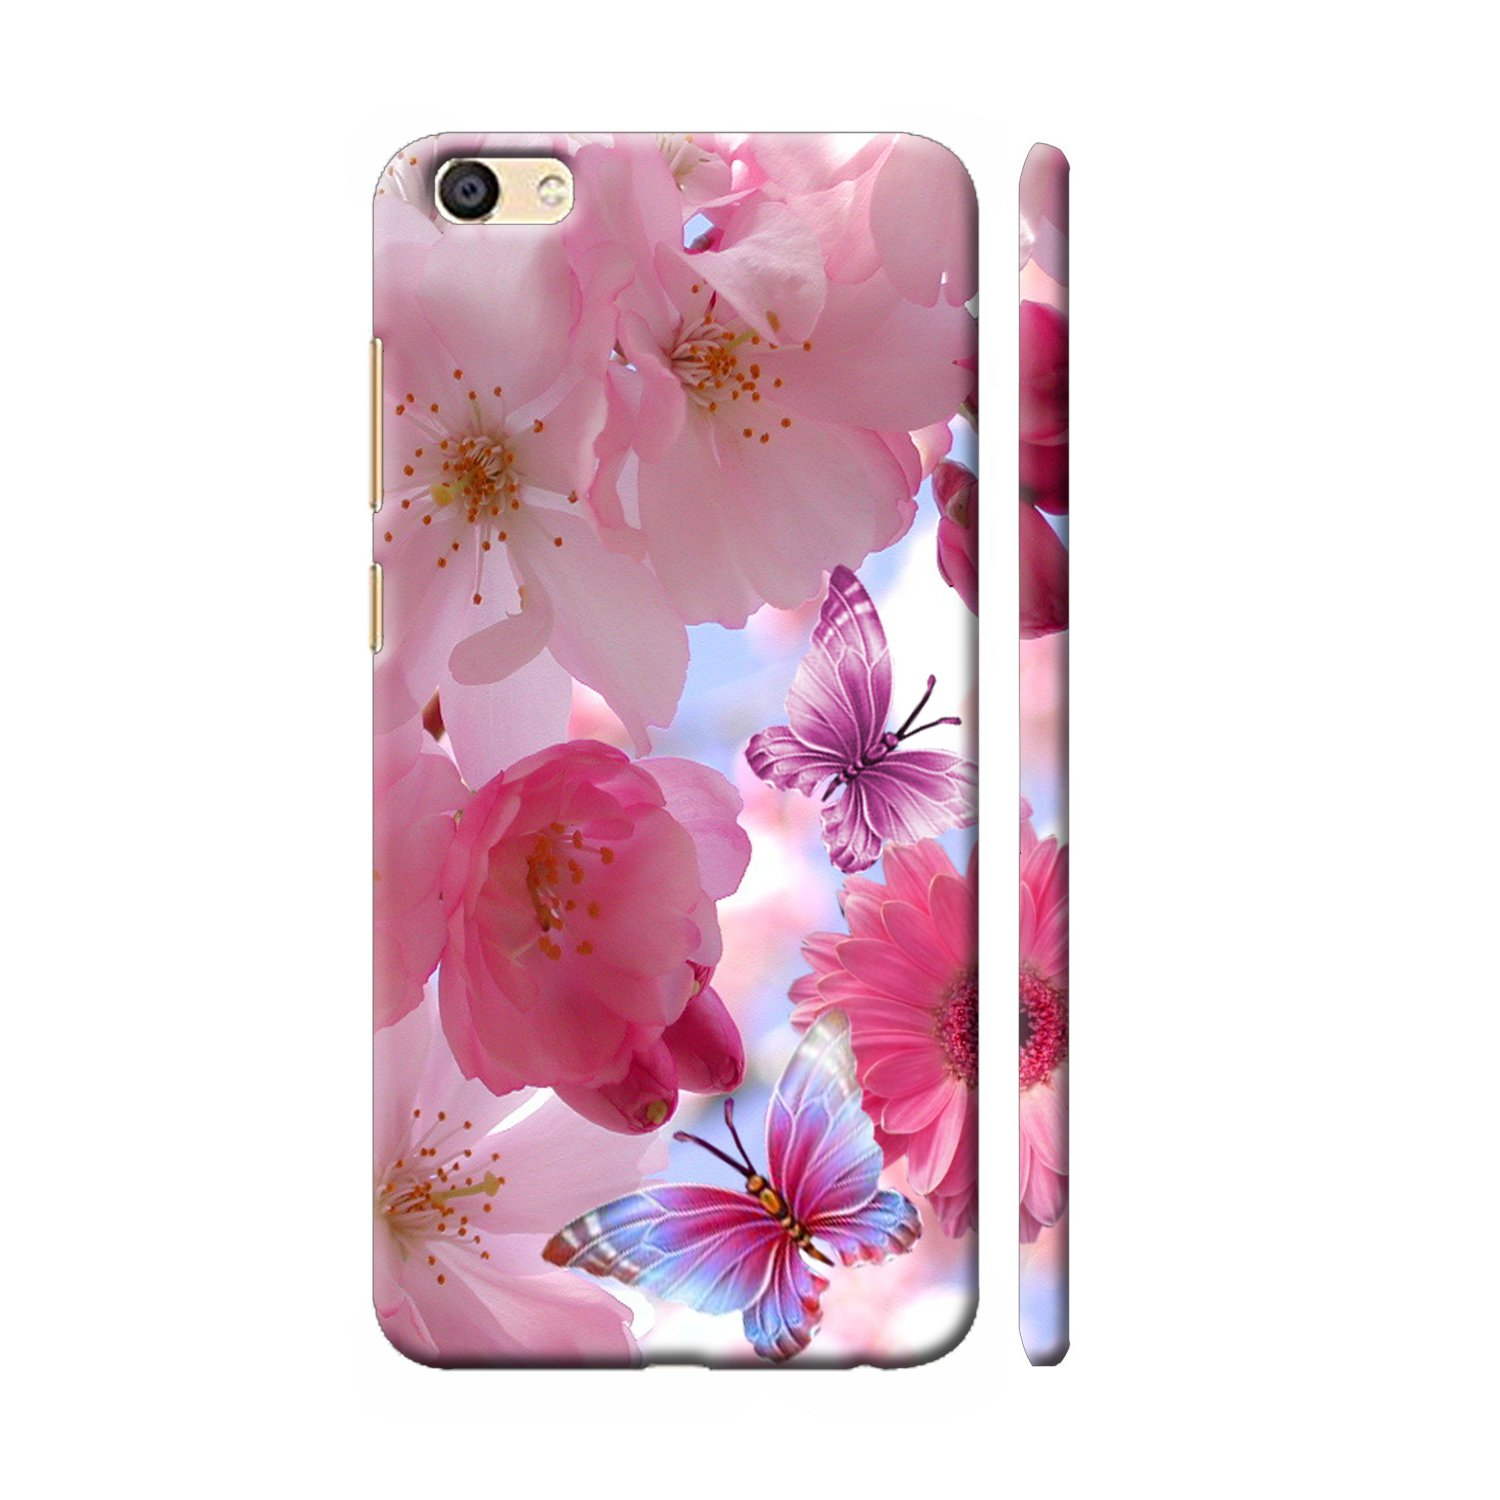 new arrival 244b1 fbafb Clapcart Vivo Y66 Designer Printed Back Cover for Vivo 1609 / Vivo Y66  -Pink Color (Butterflies and Flowers Design Print)